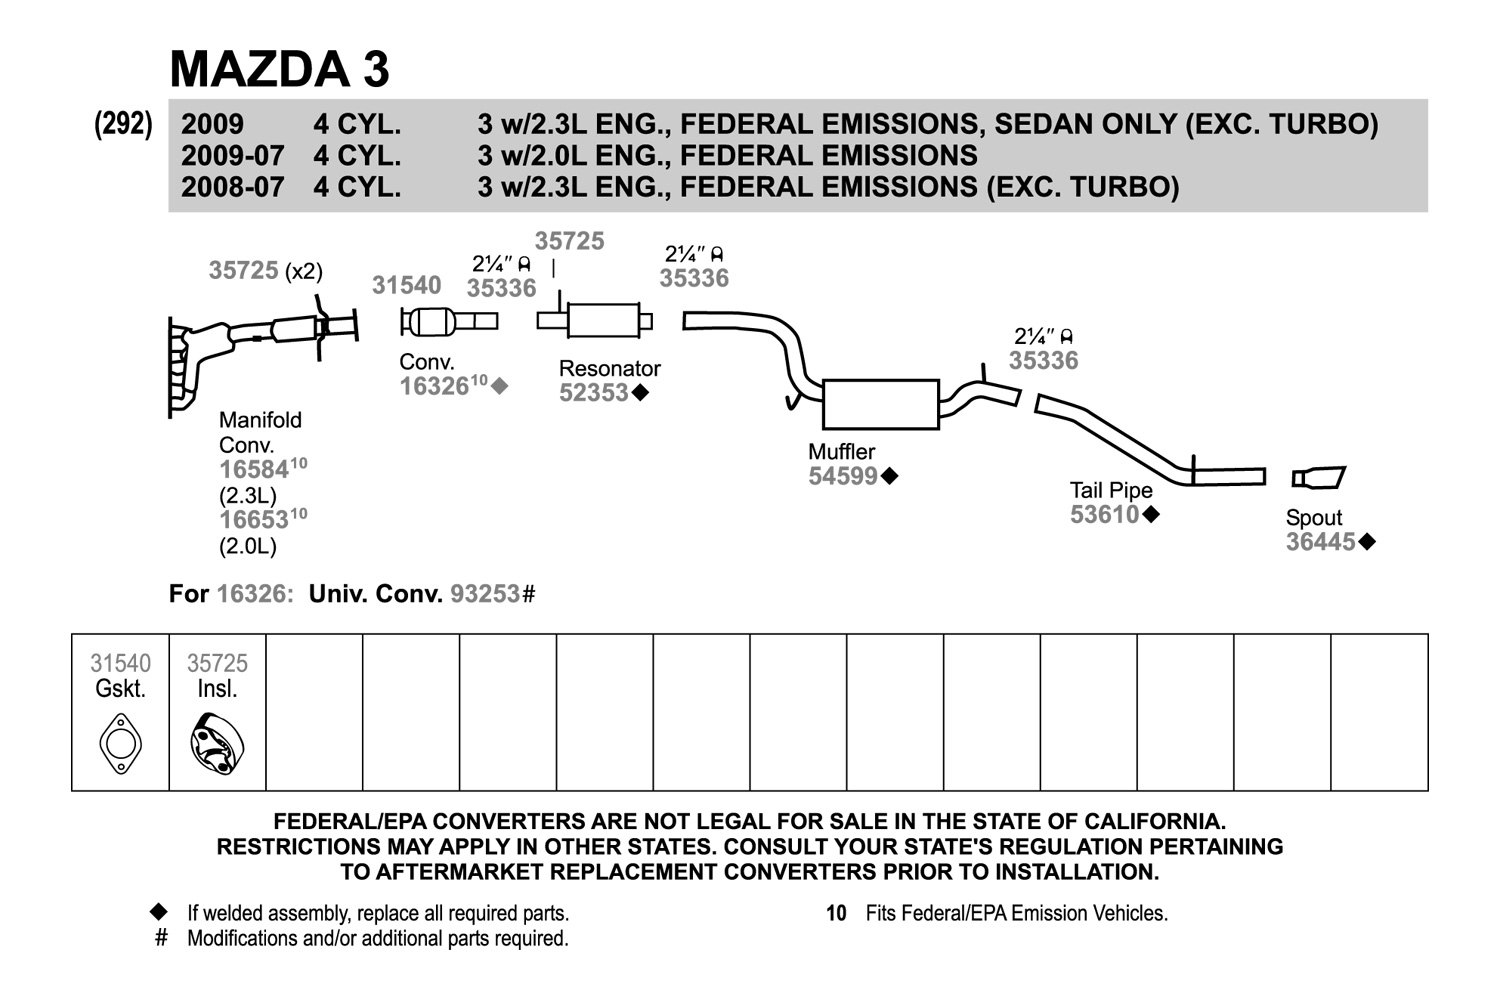 2003 Mazda Protege Exhaust System Diagram Electrical Wiring 99 Schematics Diagrams Diy Enthusiasts U2022 Rh Okdrywall Co 5 2006 6